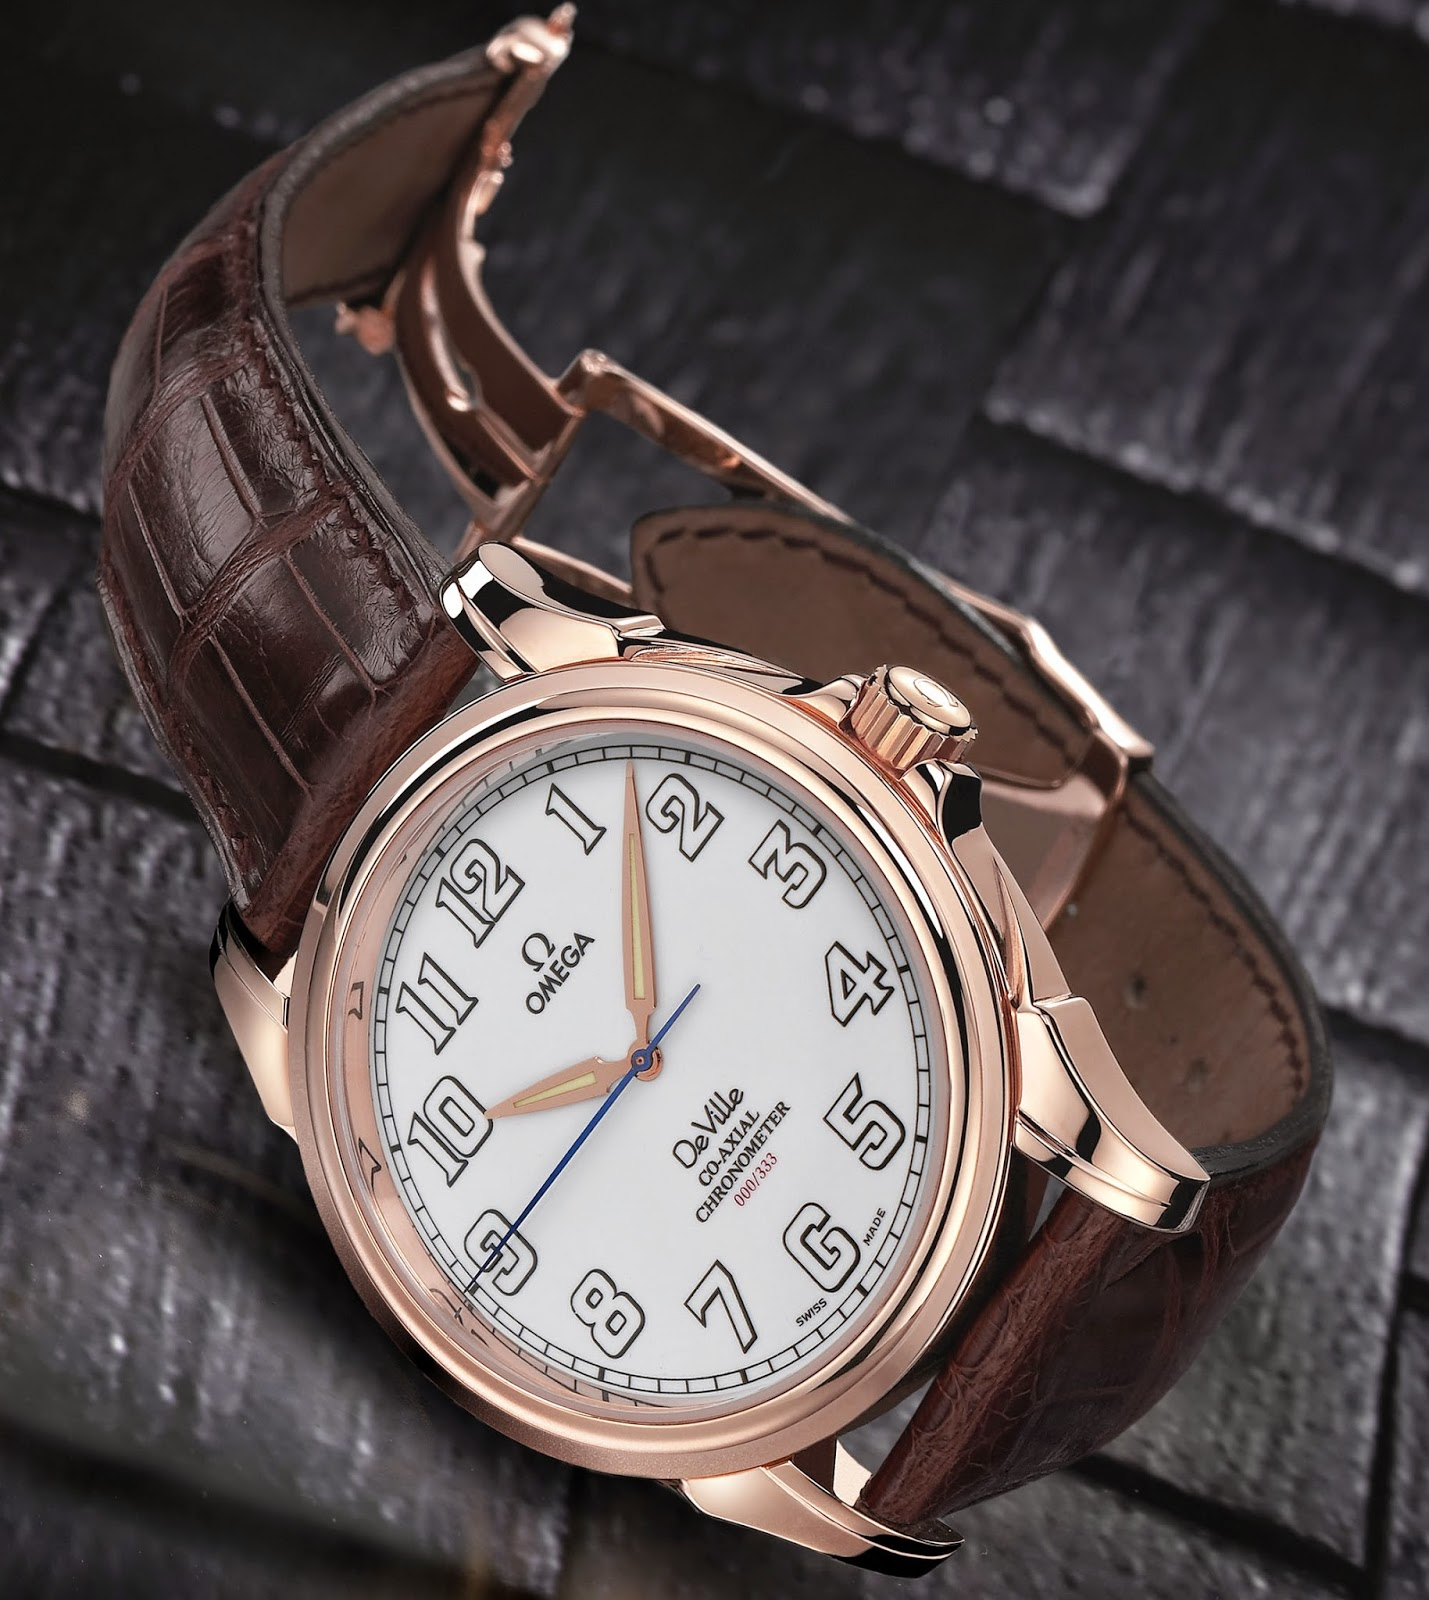 OMEGA De Ville Co-Axial 44mm, Red Gold (Ref. 4658.30.32 & Ref. 4660.20.32)